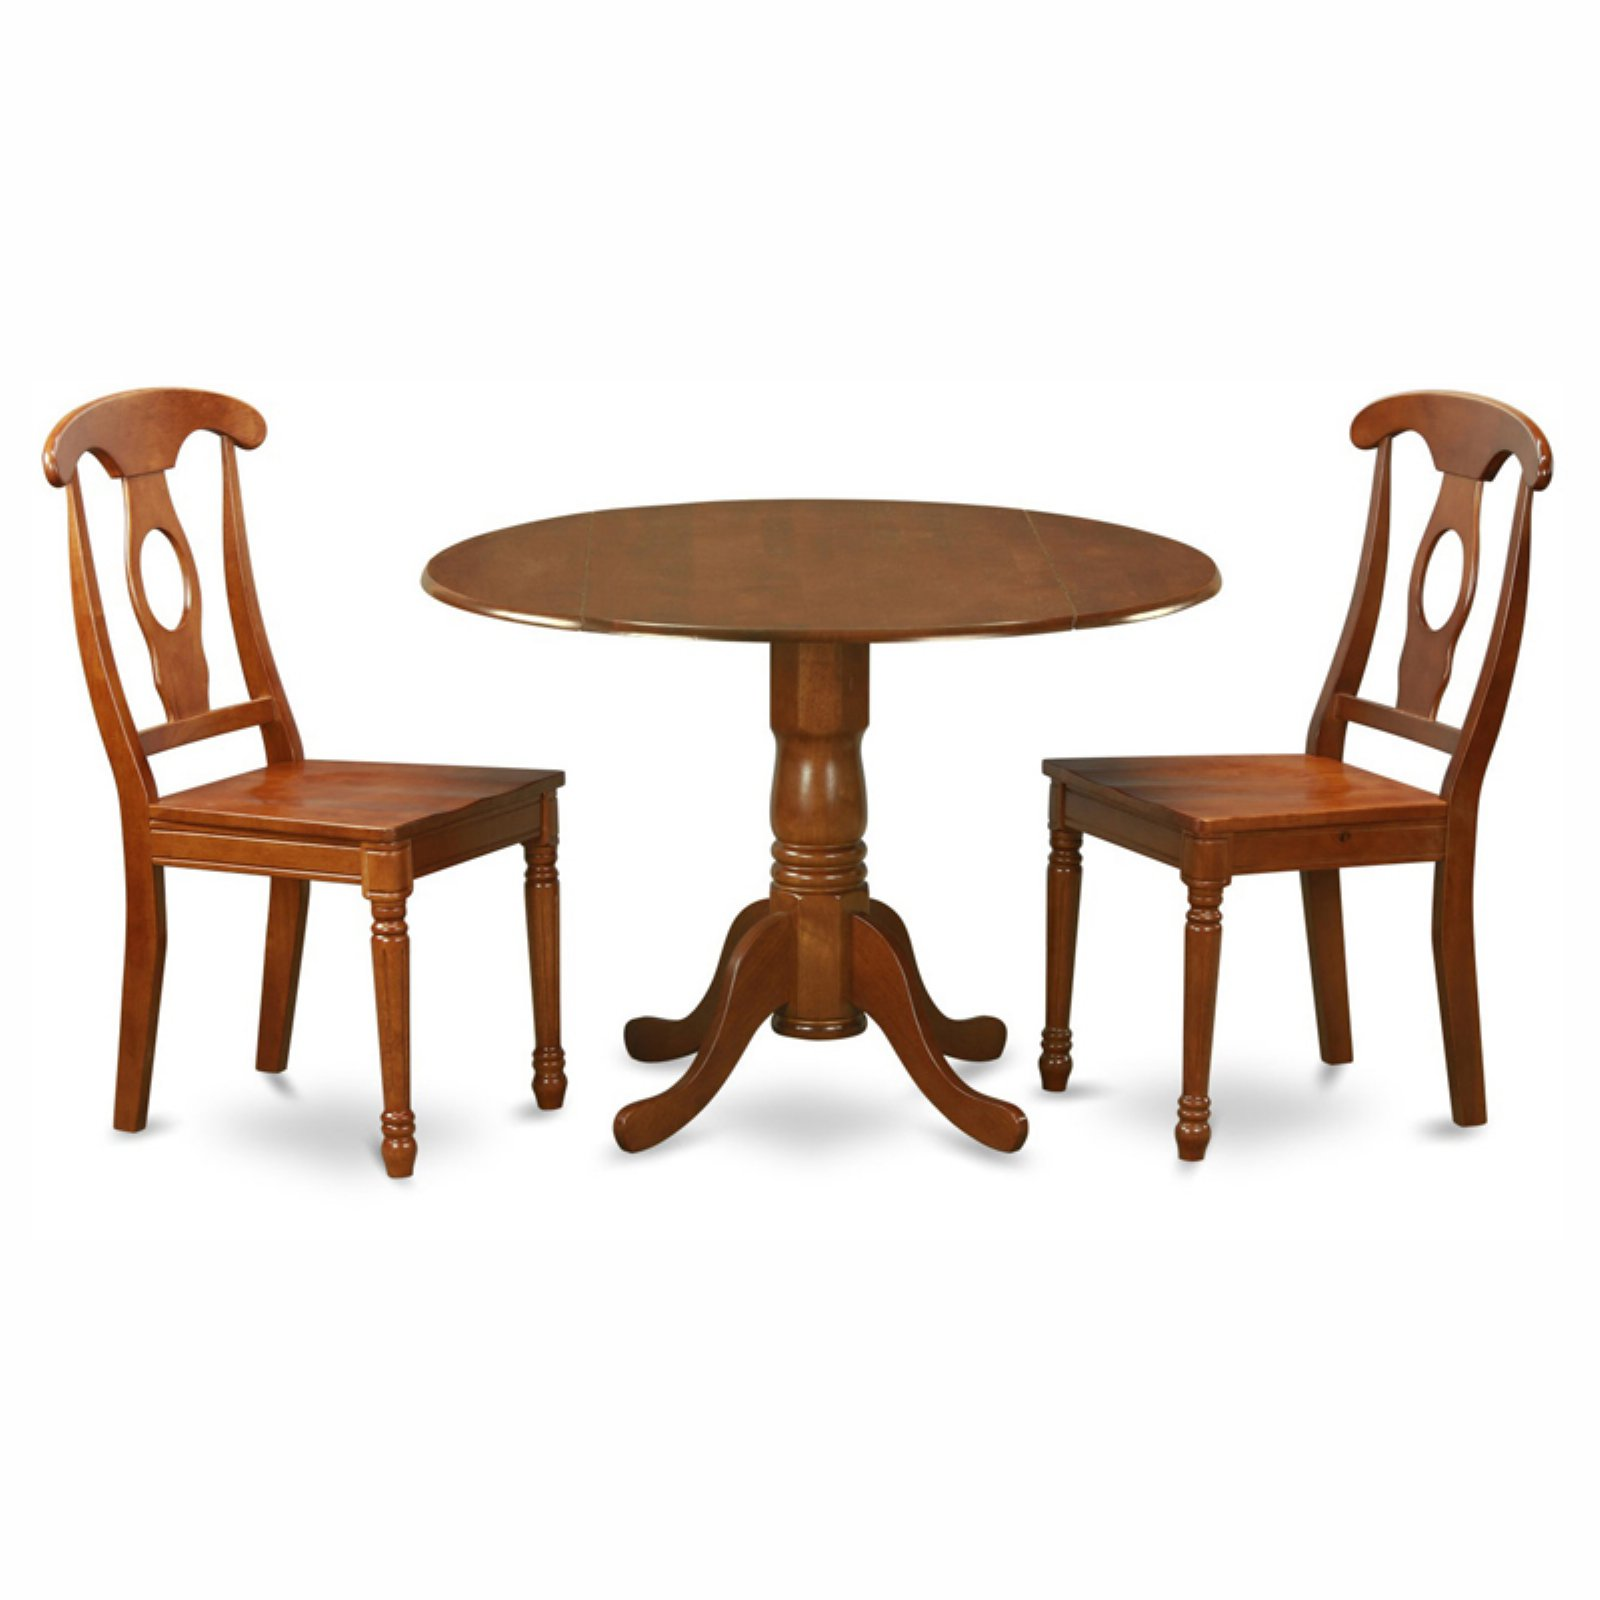 East West Furniture Dublin 3 Piece Drop Leaf Round Dining Table Set with Kenley Wooden Seat Chairs